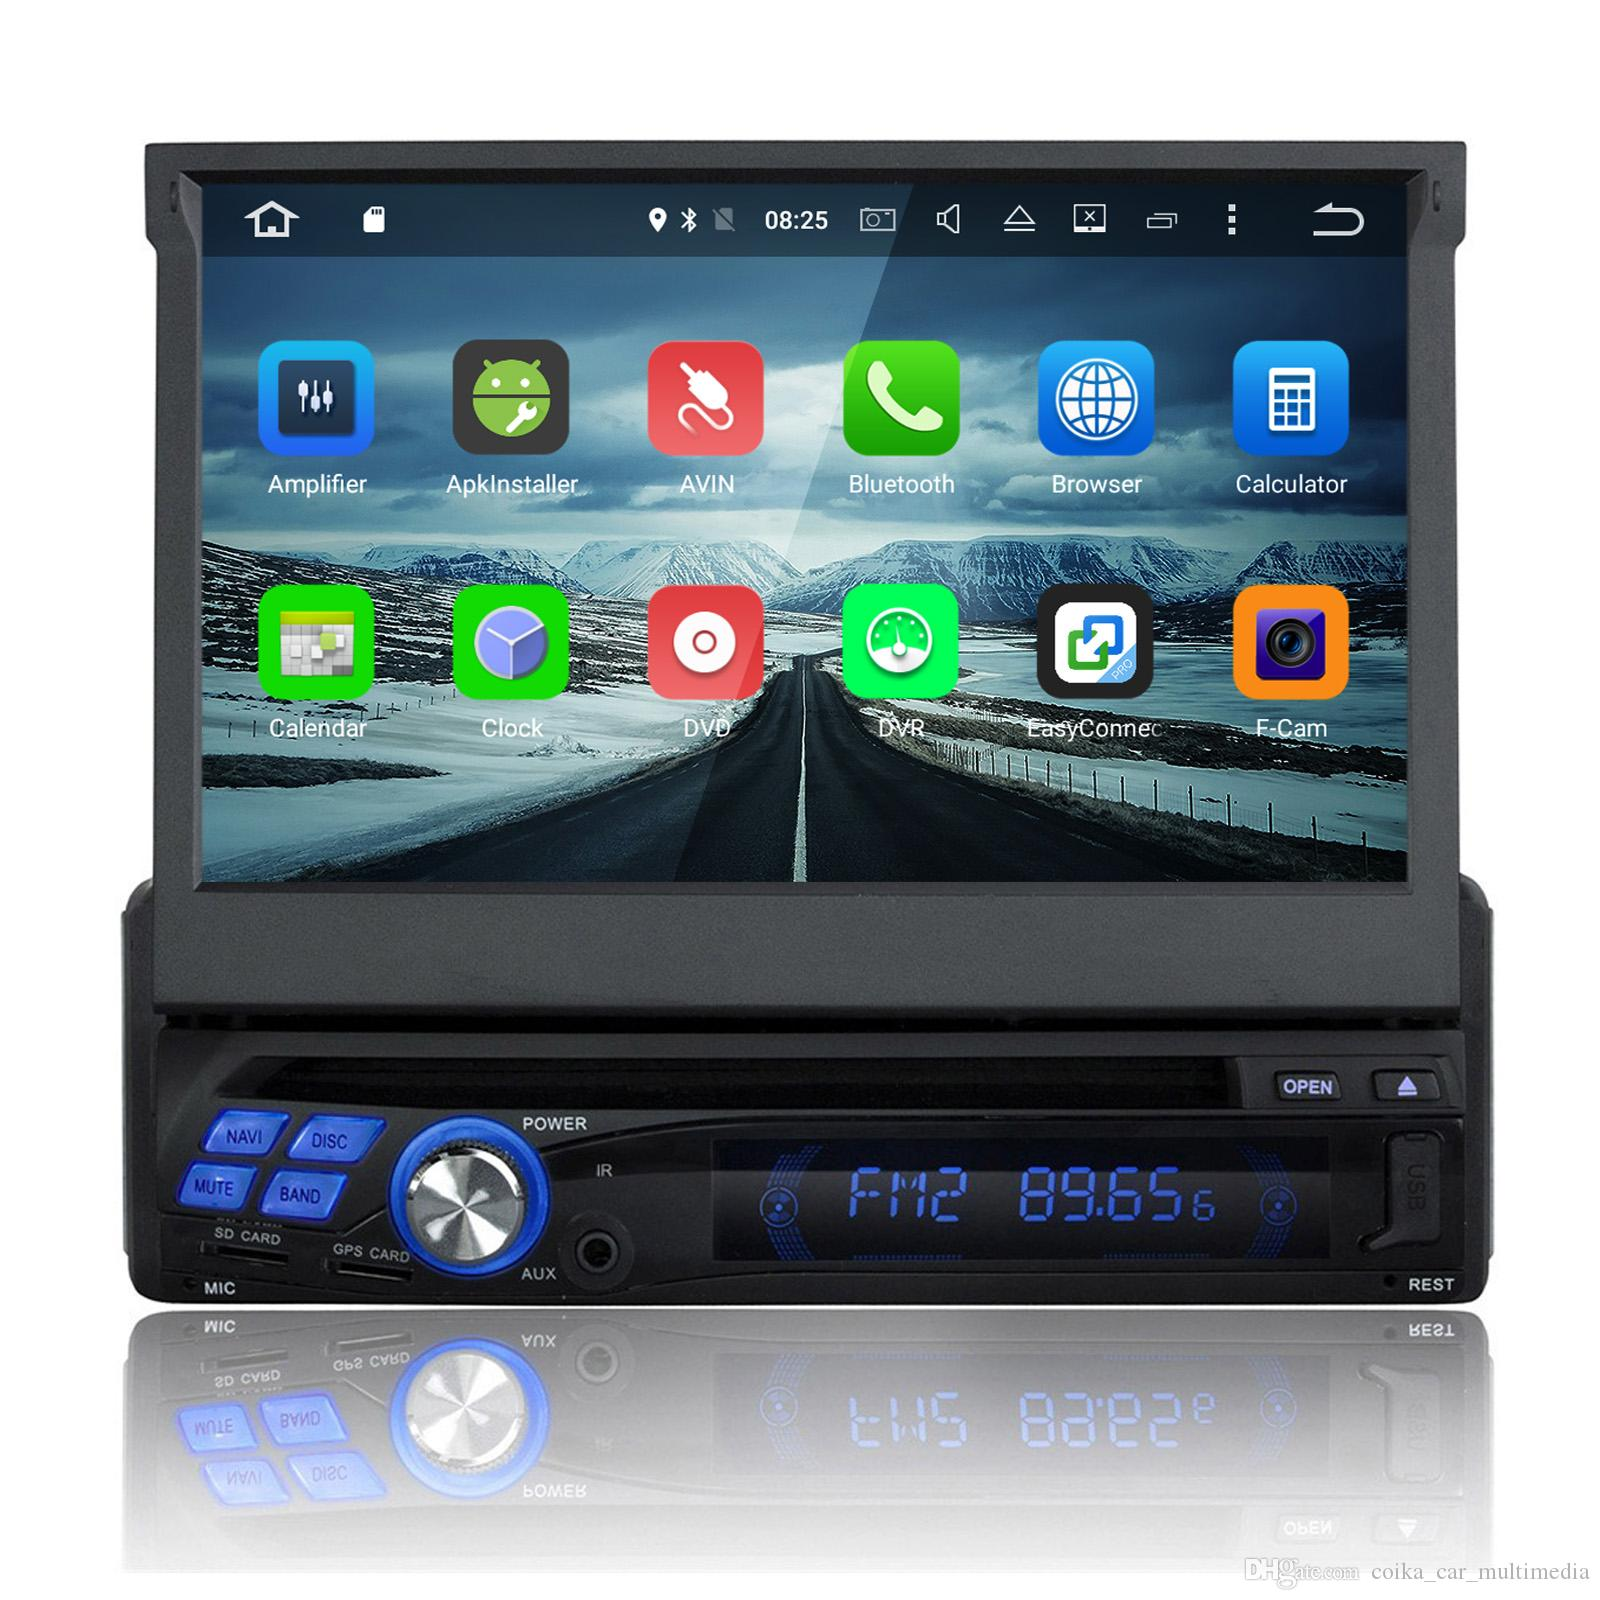 Netherlands Map Igo%0A  g Ram   g Rom   Core Rk Px  Android     One Din Auto Car Dvd Tape Recorder  Gps Navi Rds Radio Bt Phonebook Google Wifi  g Netowork Obd Dvr In Car Dvd